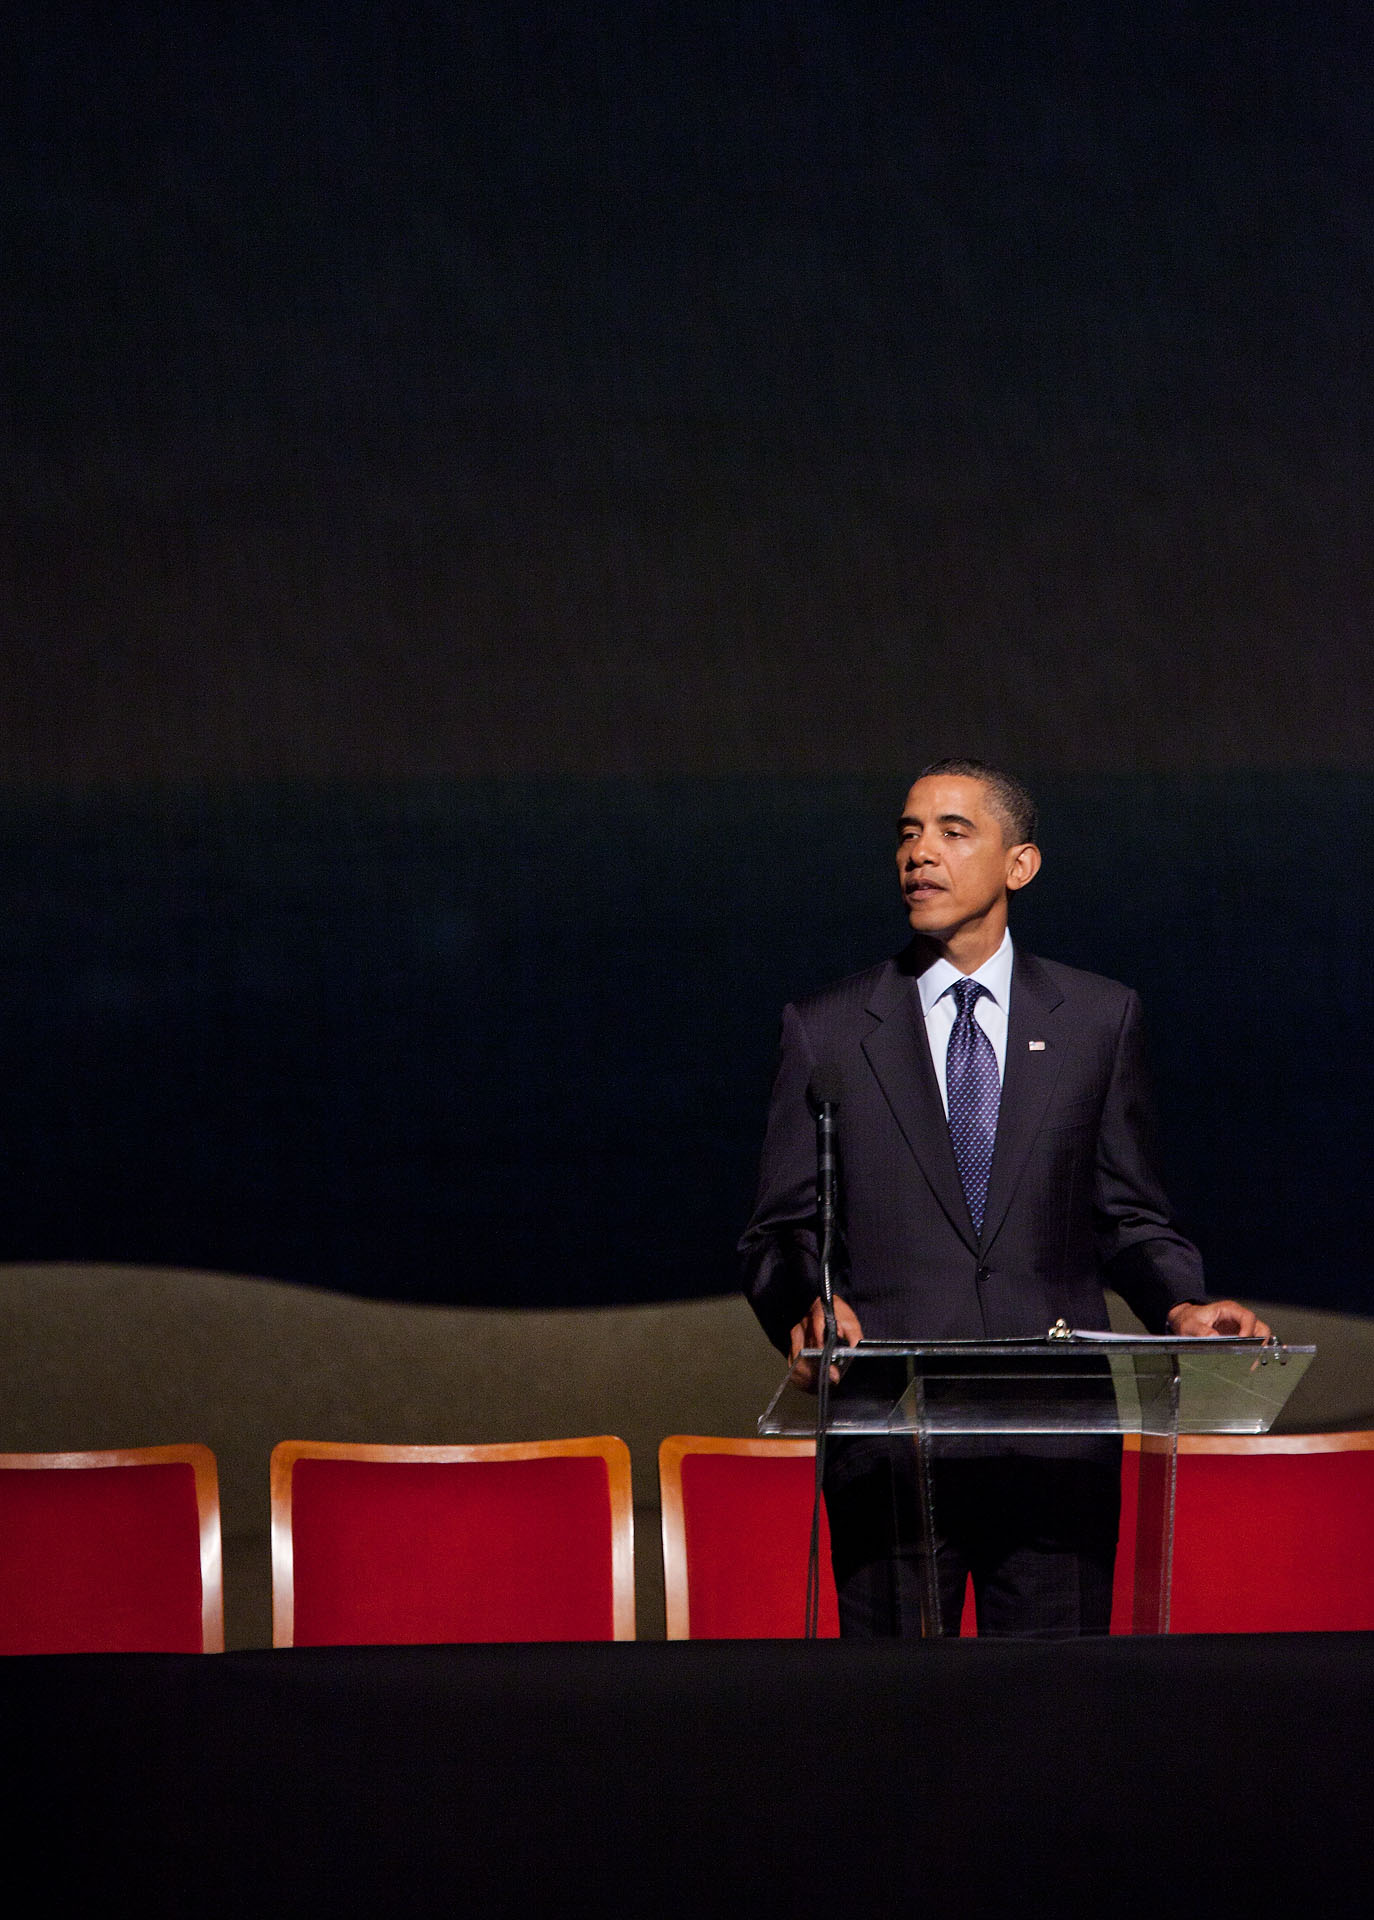 President Obama Speaks at Richard Holbrooke's Memorial